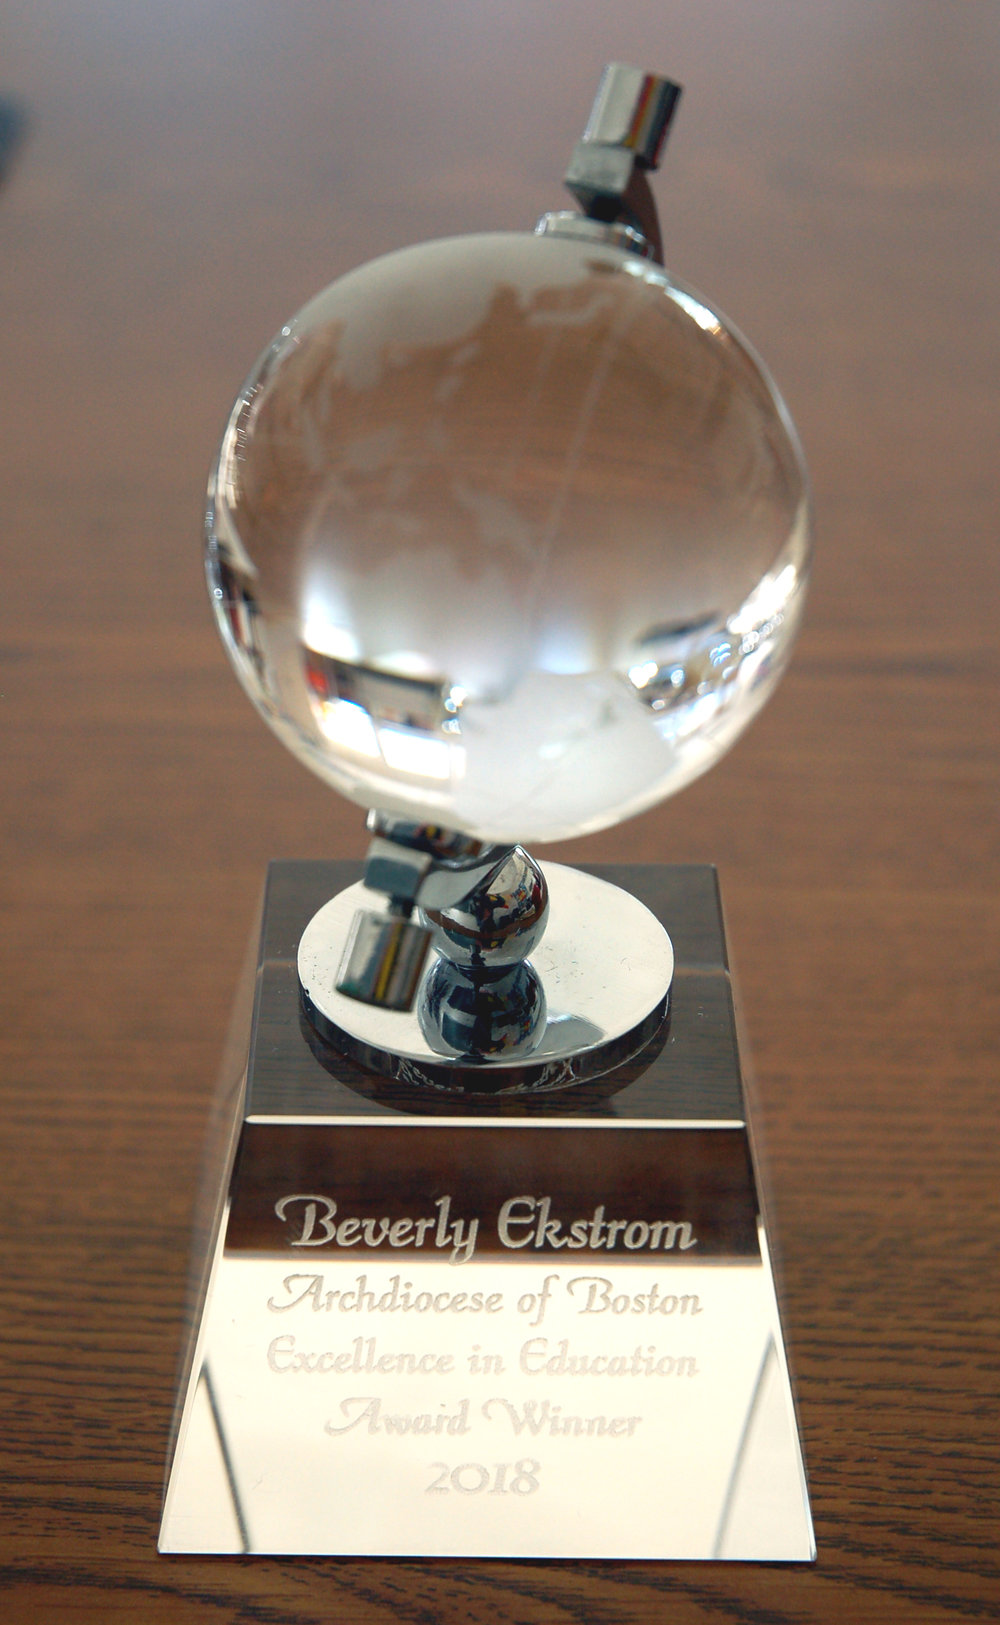 "The base of a glass globe was inscribed with ""Beverly Ekstrom Archdiocese of Boston Excellence in Education Award Winner 2018."""